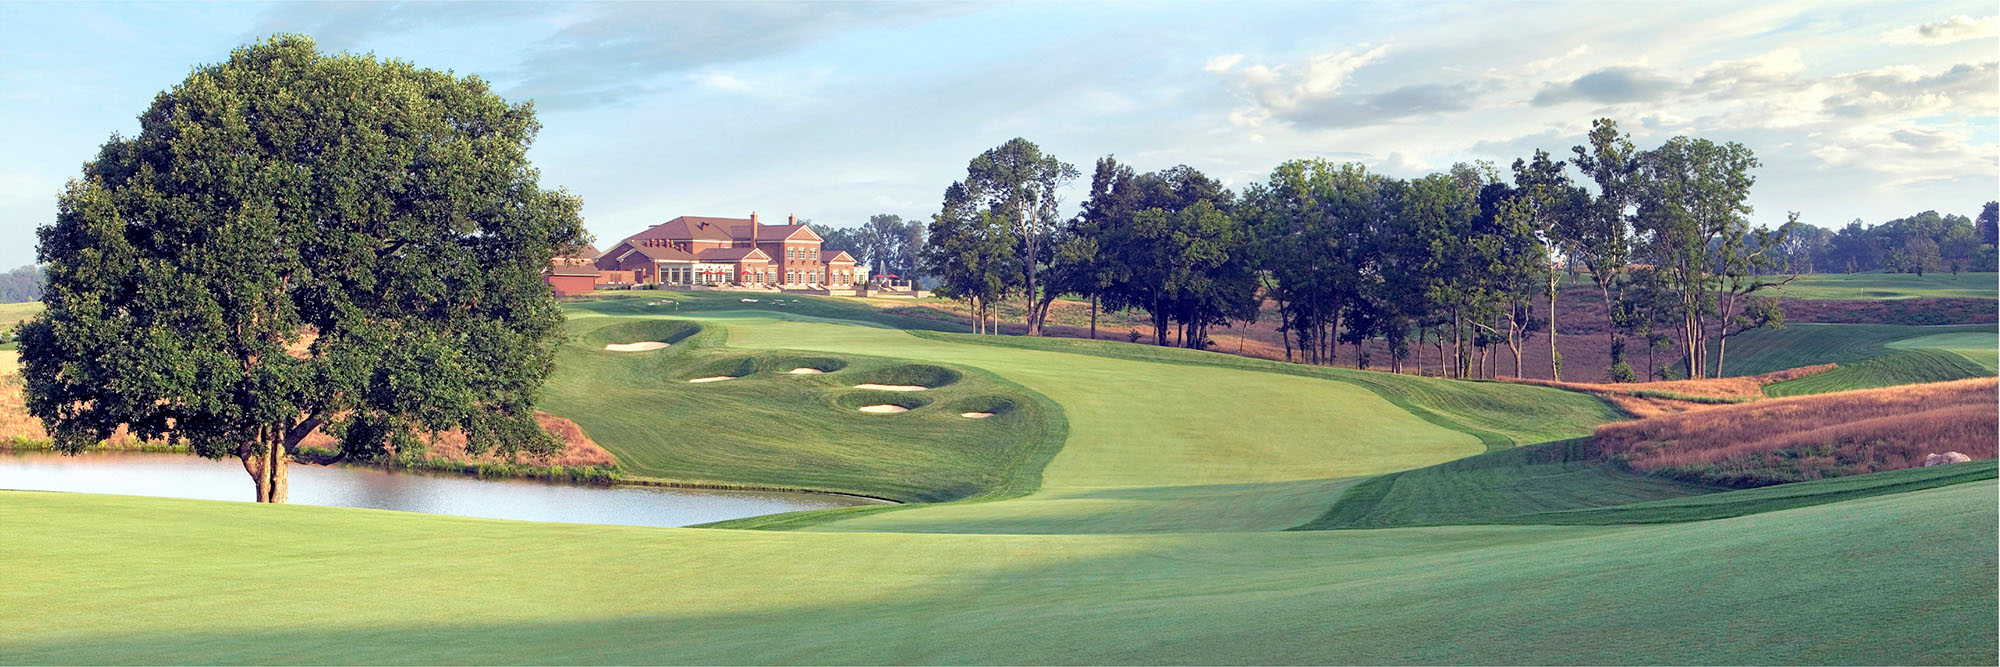 Golf Course Image - Olde Stone No. 18